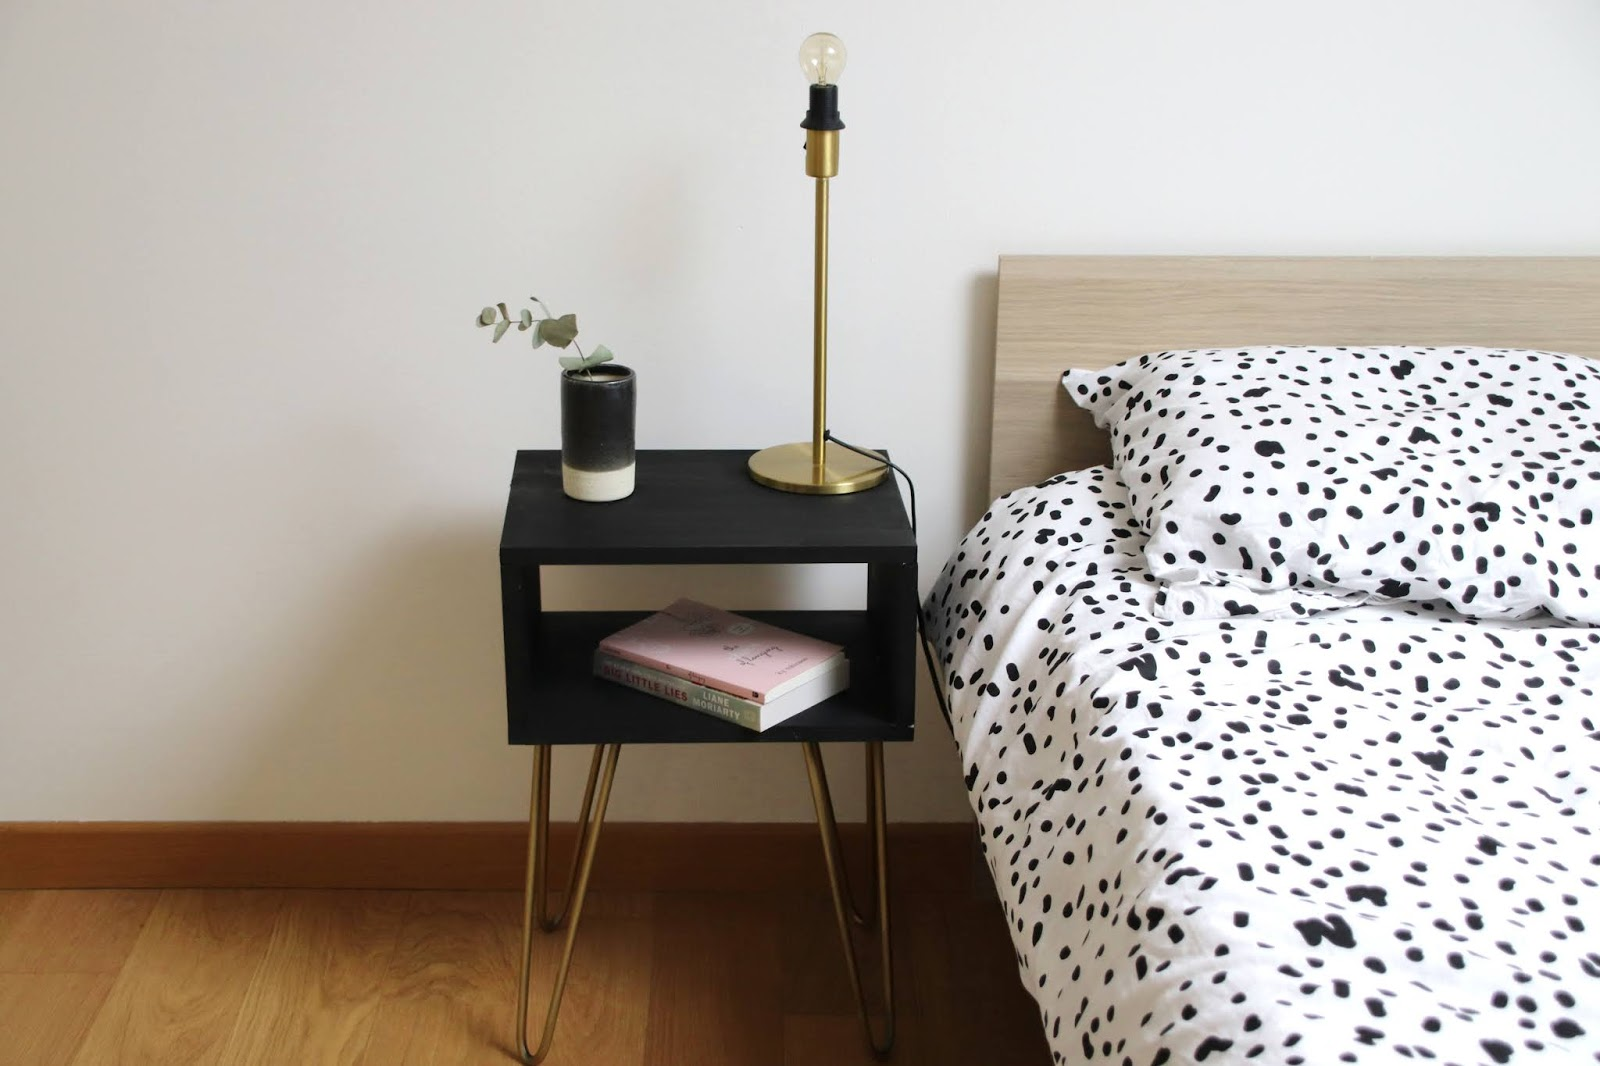 diy la table de chevet aux pieds compas le bazar d 39 alison blog mode lyon et autres. Black Bedroom Furniture Sets. Home Design Ideas